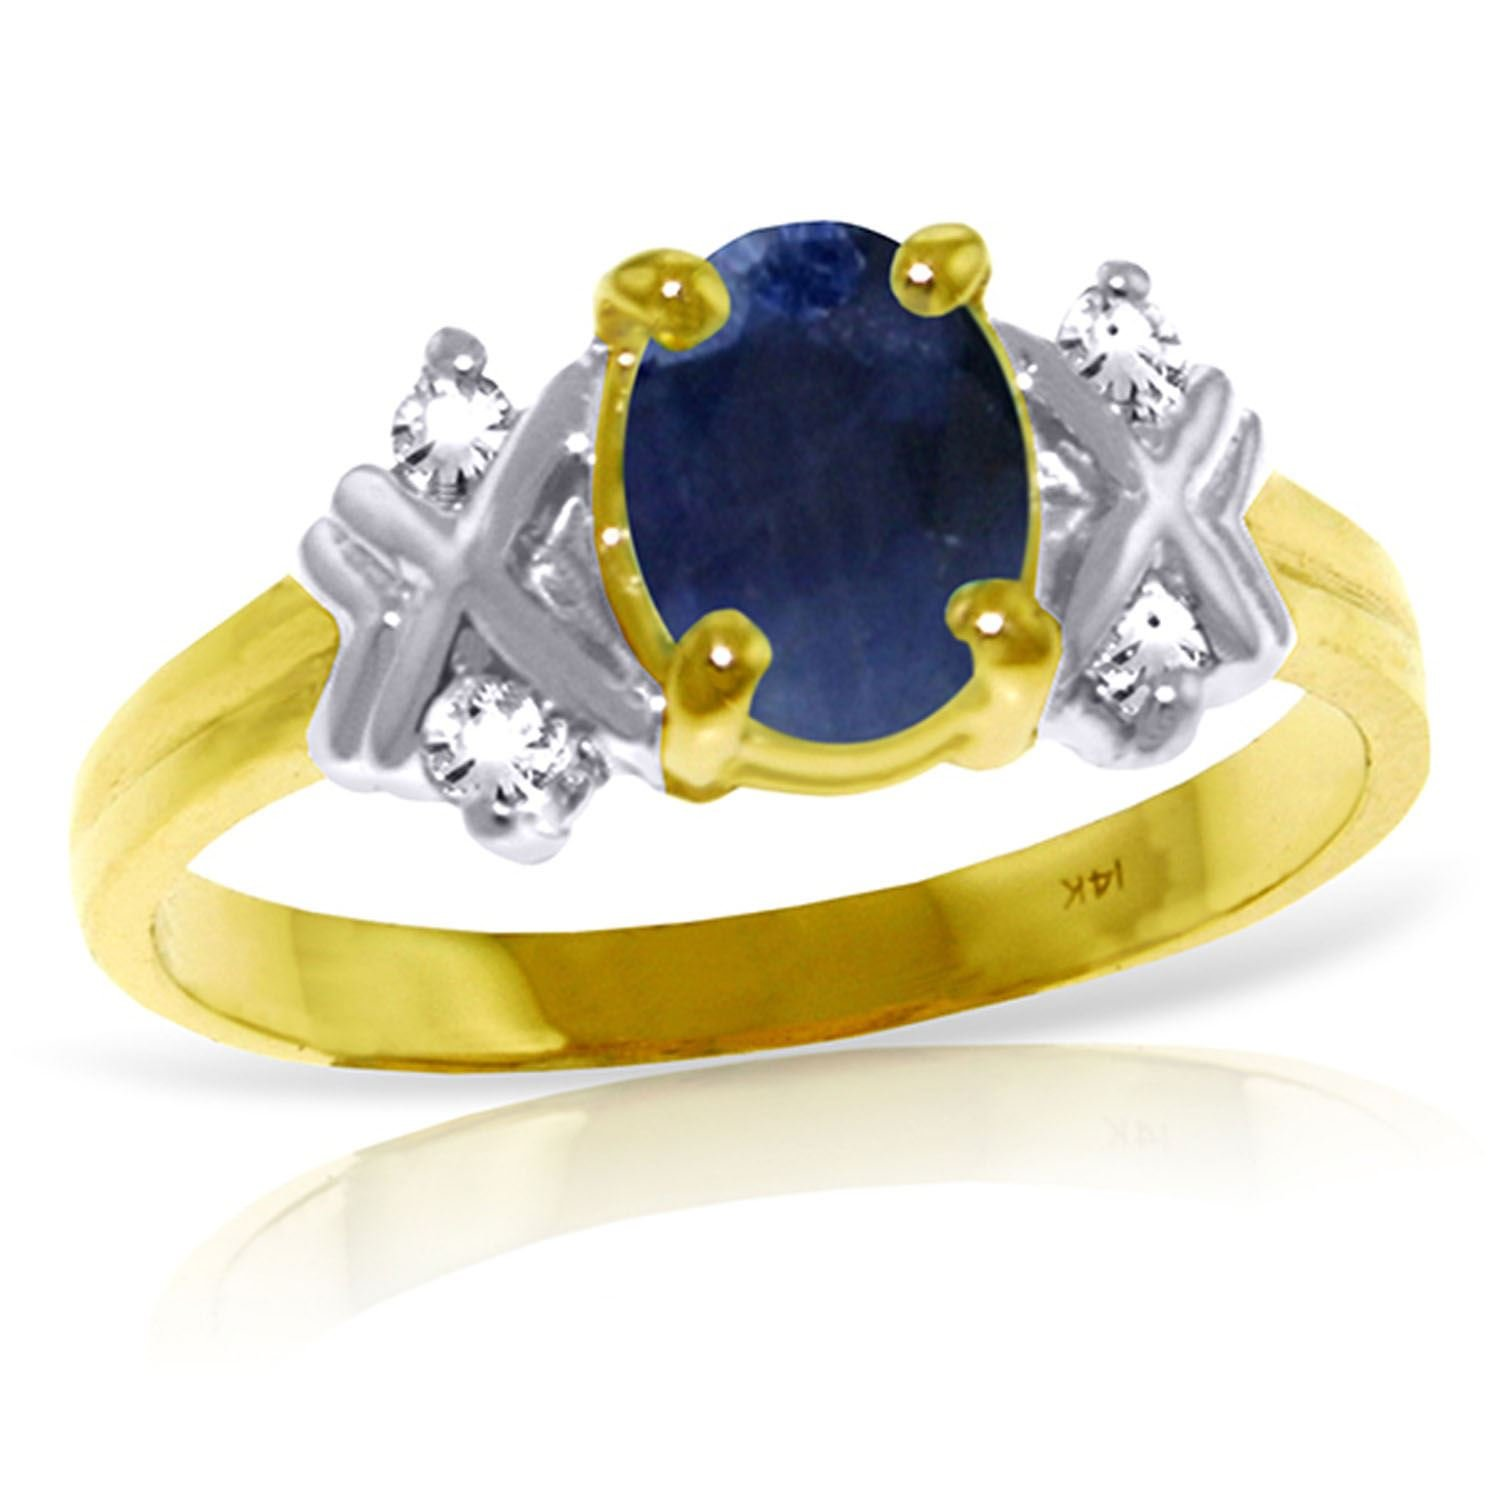 ALARRI 1.47 Carat 14K Solid Gold Love Lessons Sapphire Diamond Ring With Ring Size 6 by ALARRI (Image #1)